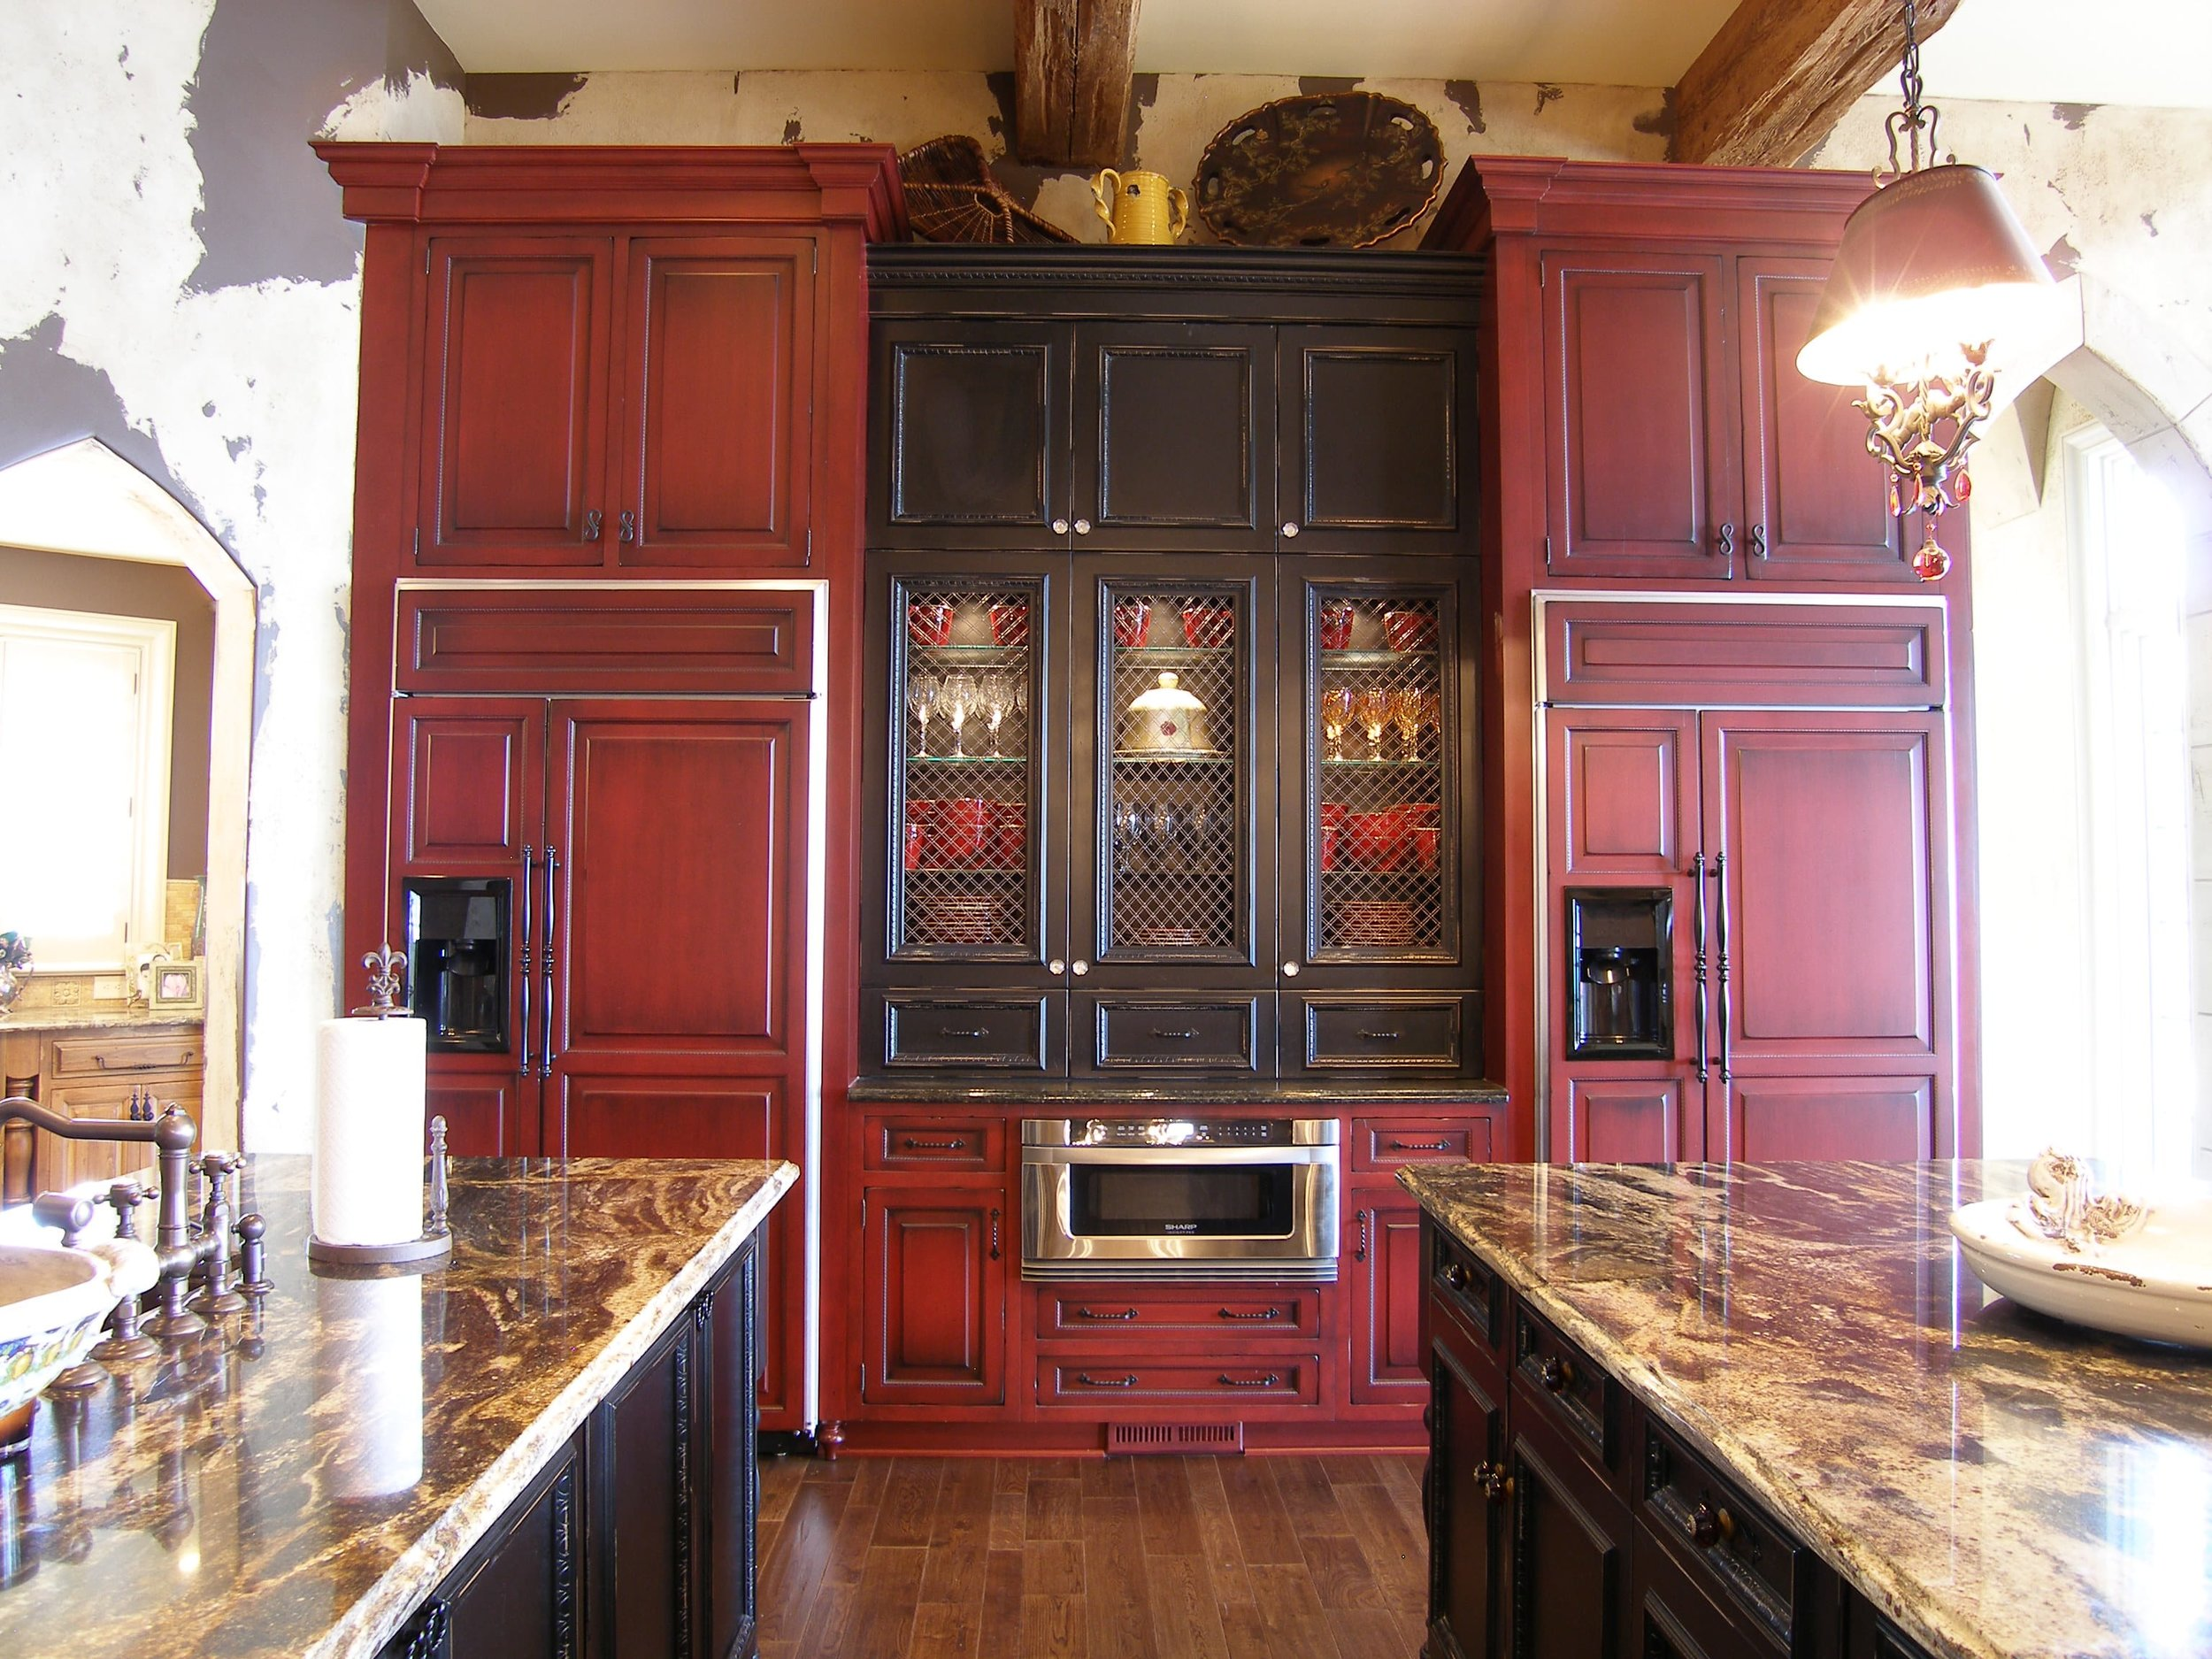 Custom cabinets in the kitchen. Panels on the dual refrigerators give a streamlined look.